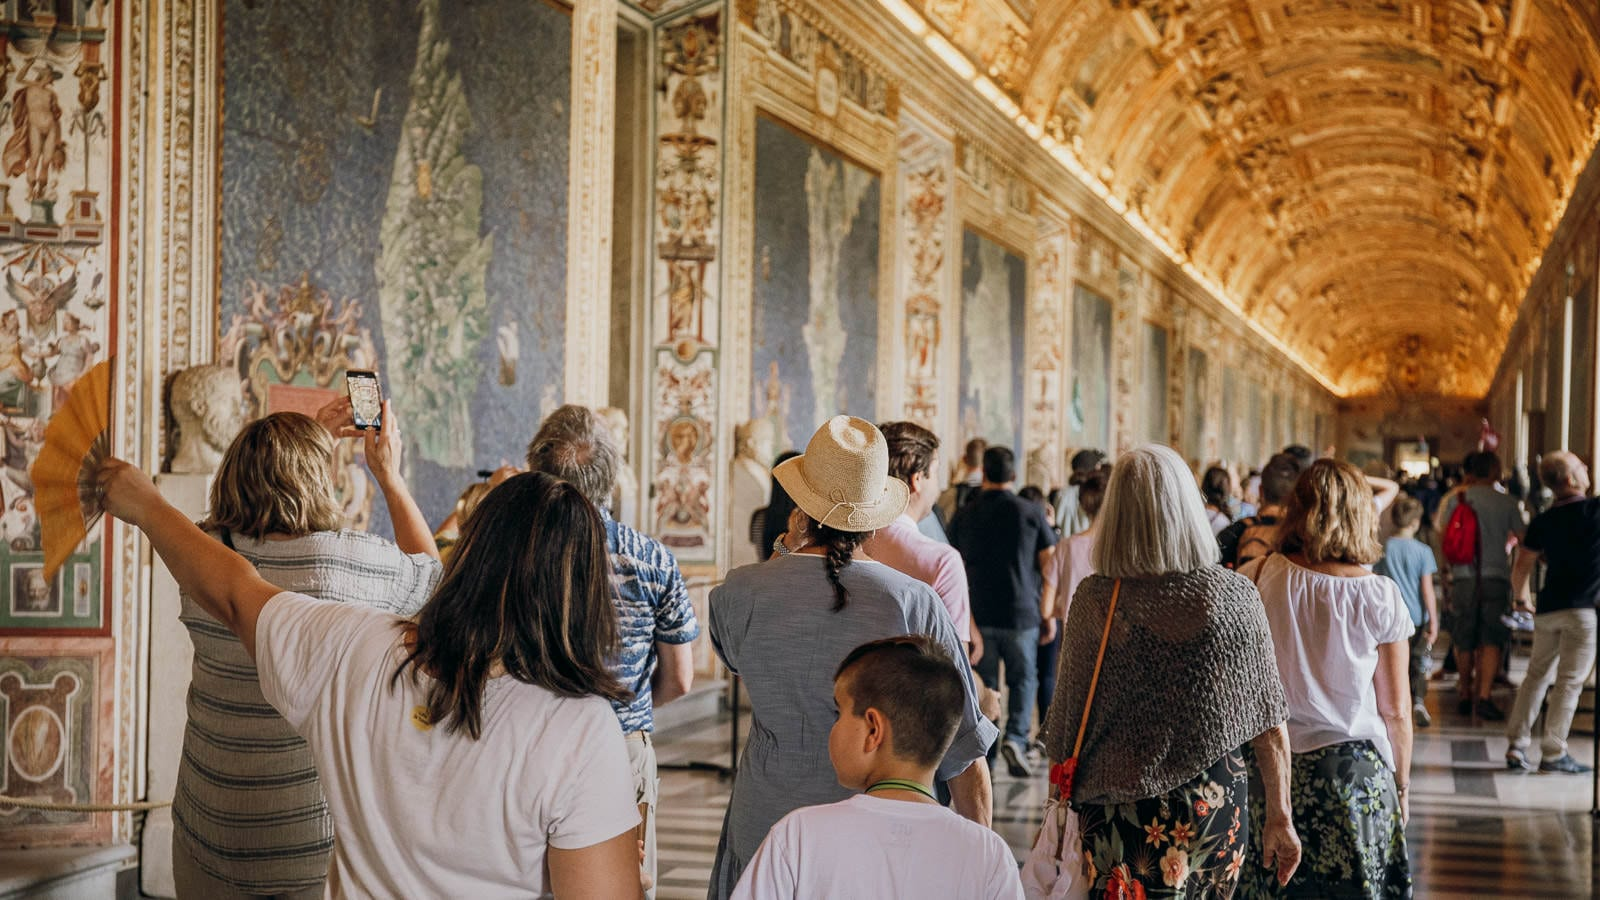 The Vatican Museums: Attraction in Rome